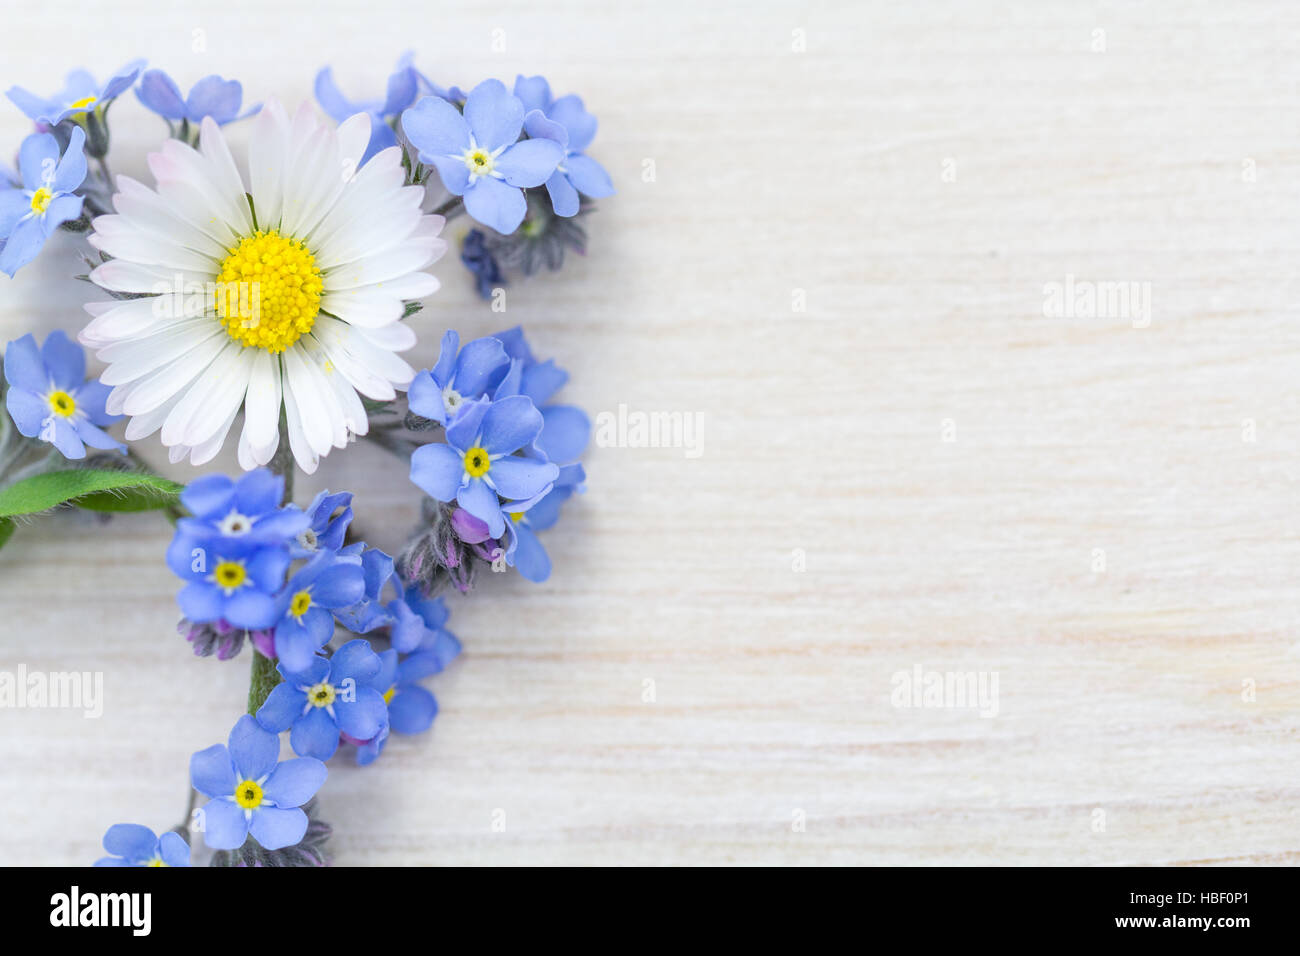 Forget-me-not, Daisy and grapehyacinth - Stock Image